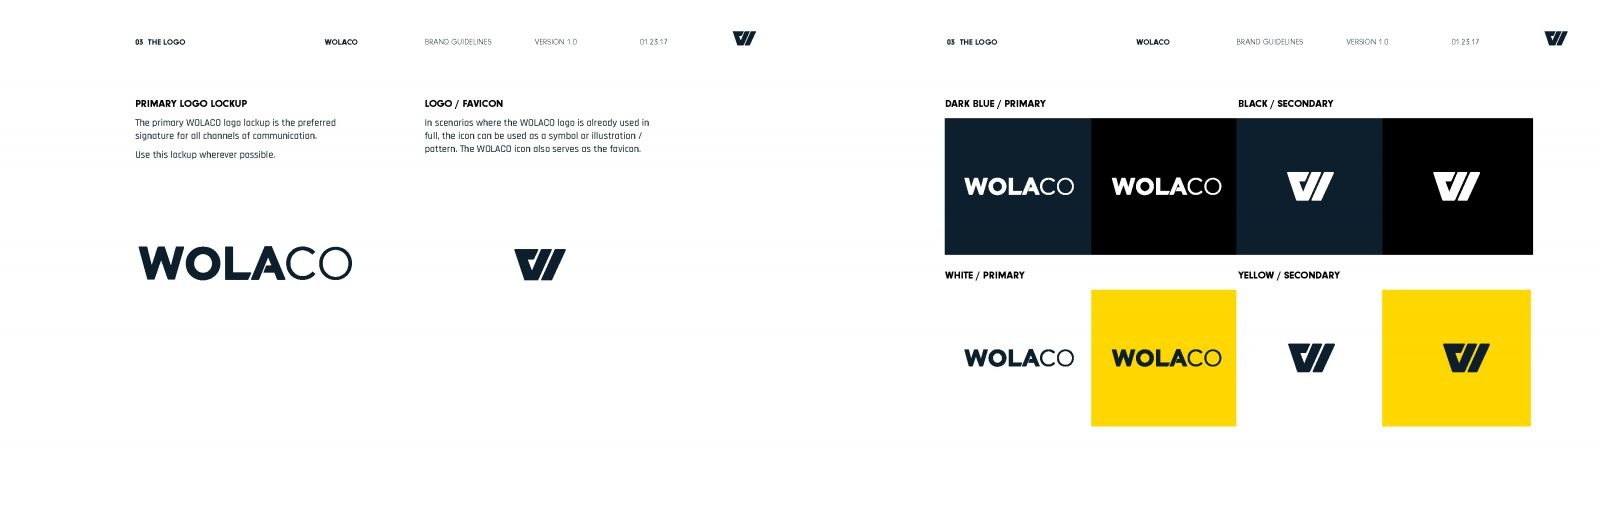 WOLACO_Brand-Book_r2_Page_12